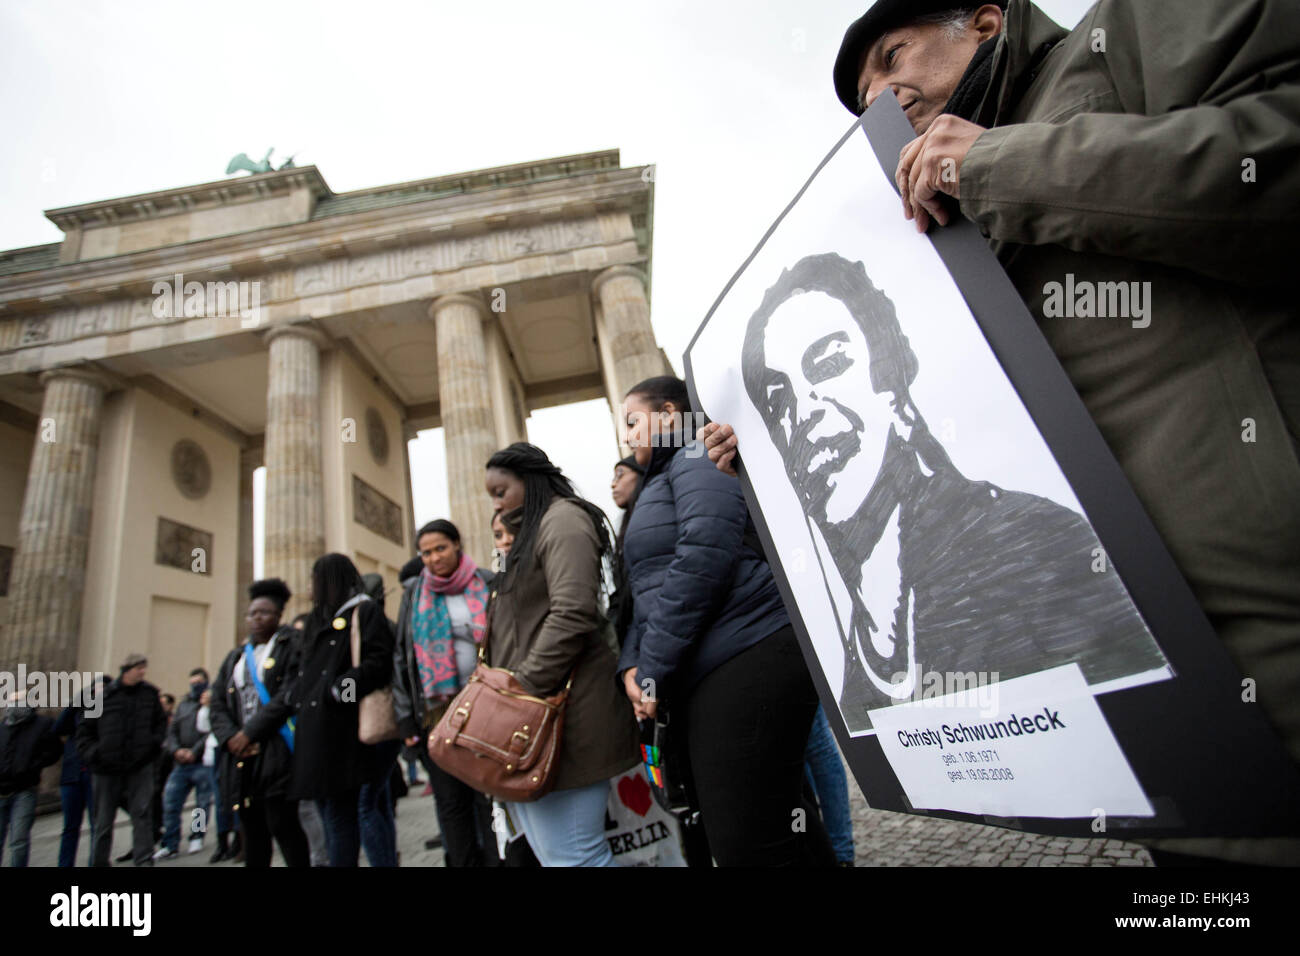 Berlin, Germany. 15th Mar, 2015. Demonstrators hold photos of people who were possibly killed through racist police - Stock Image